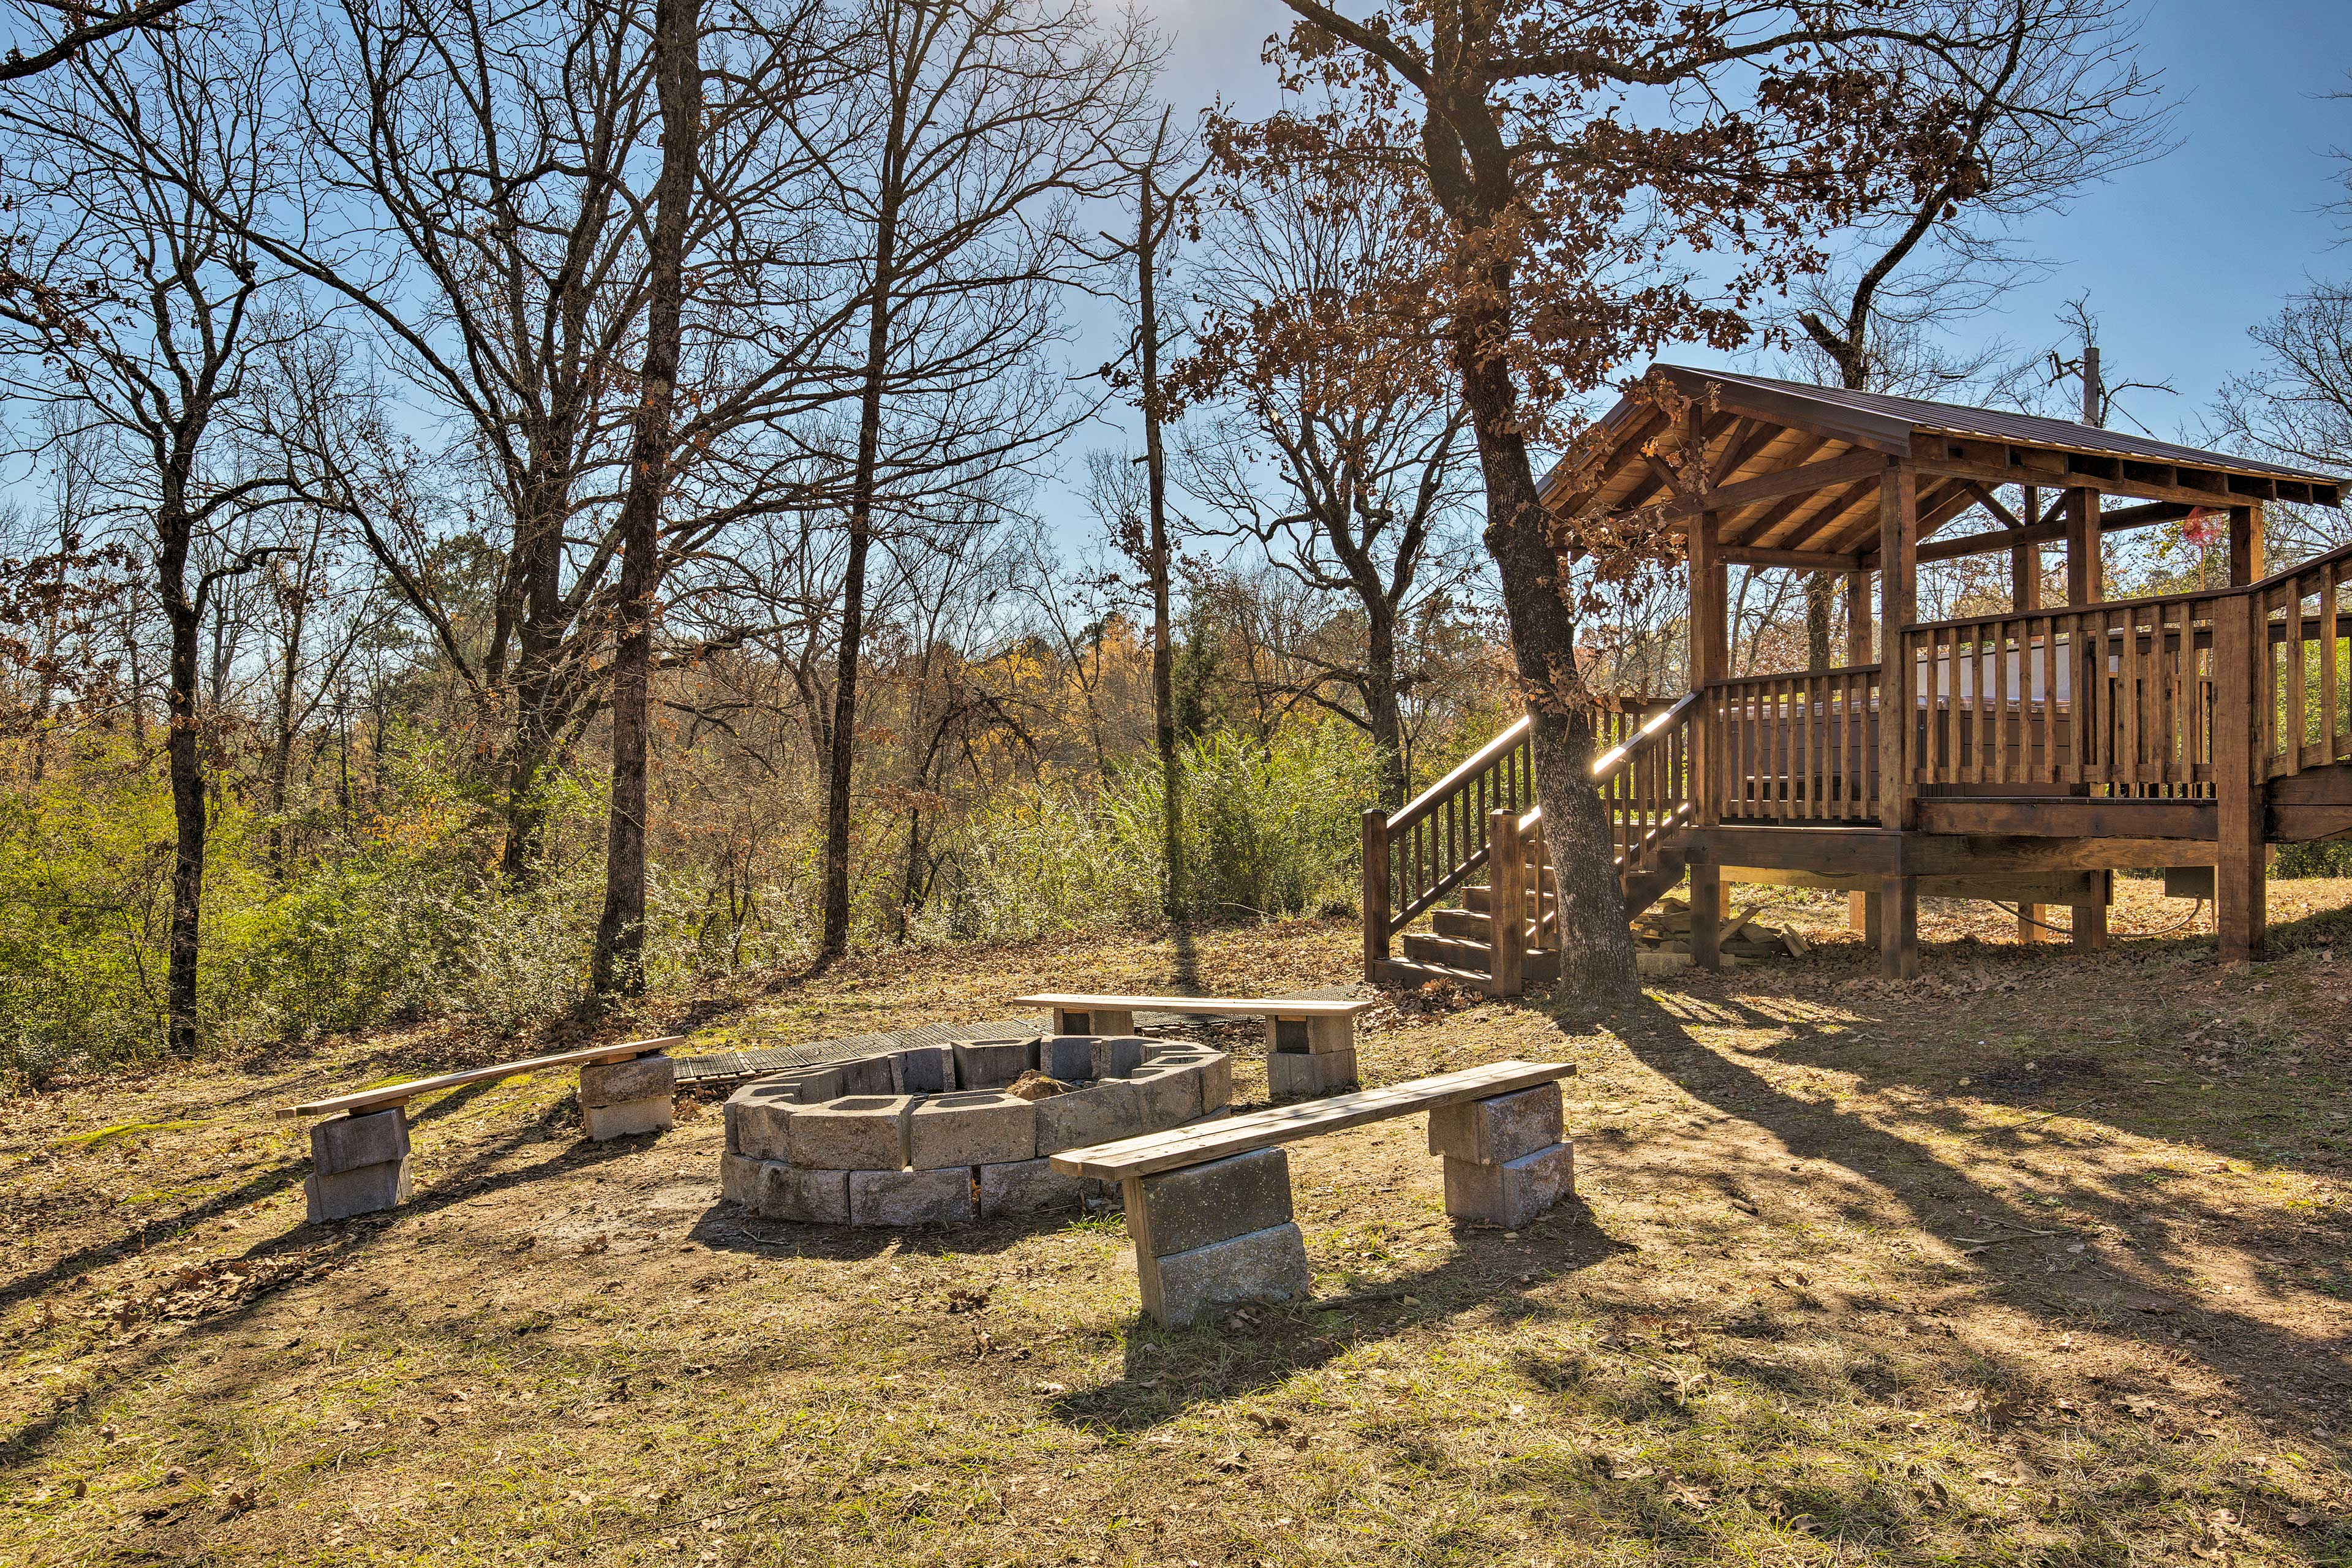 Secluded and private, this home provides a true getaway!